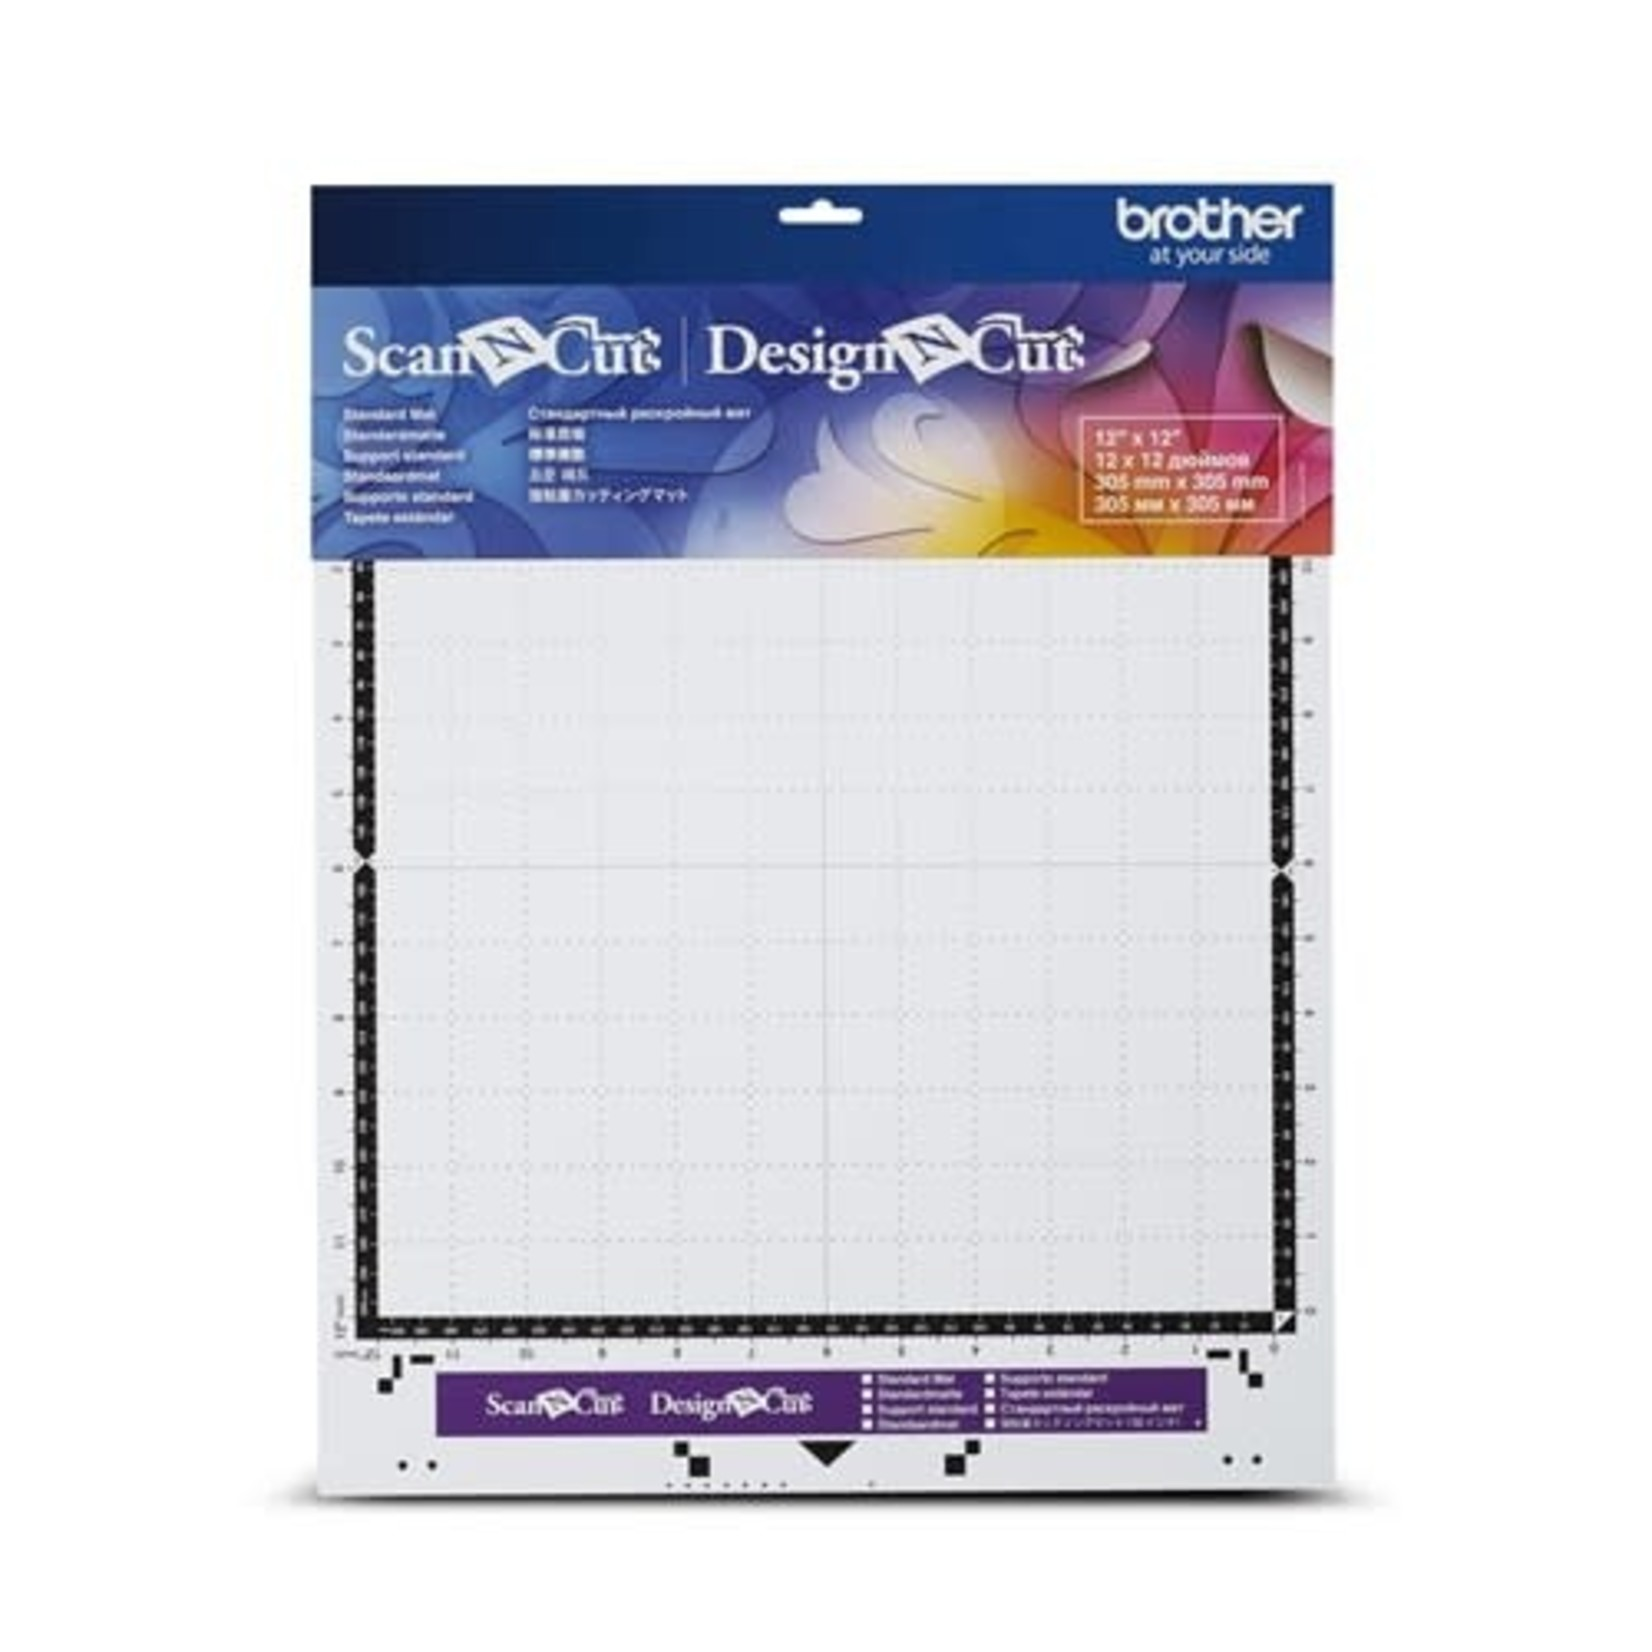 Brother BROTHER STANDARD TACK MAT 12x12 SCAN N CUT